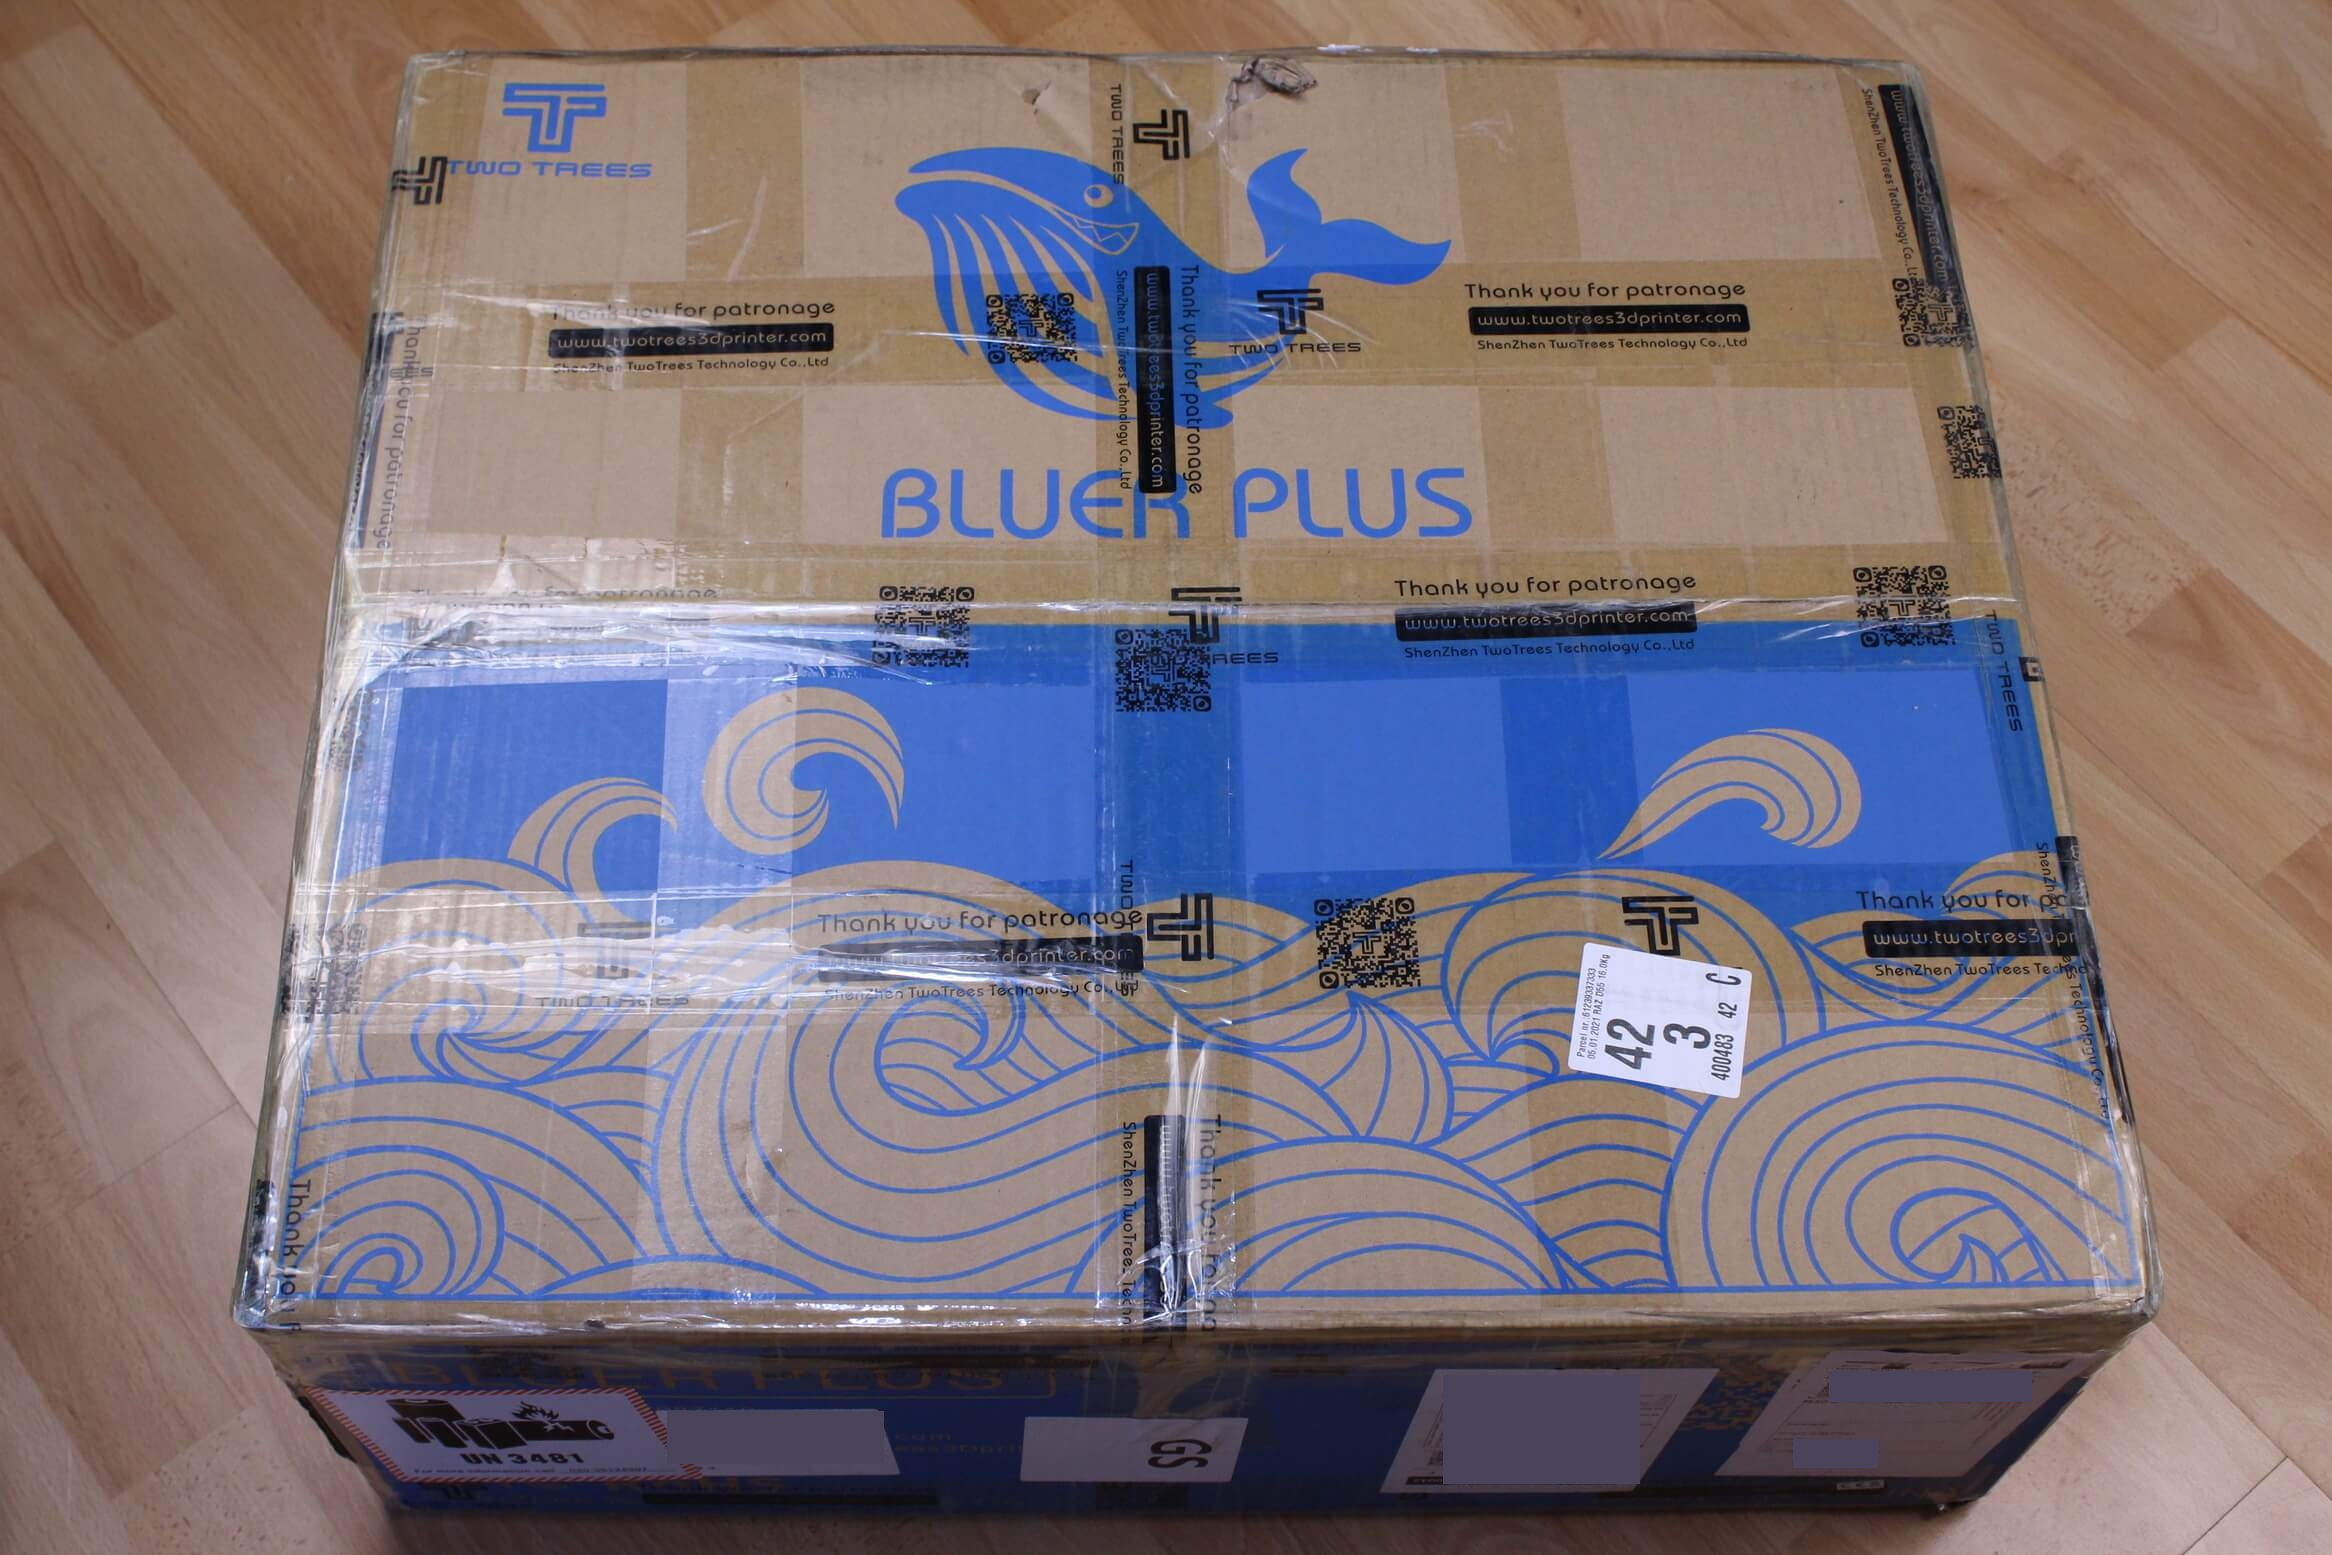 Bluer-Plus-Review-Packaging-2